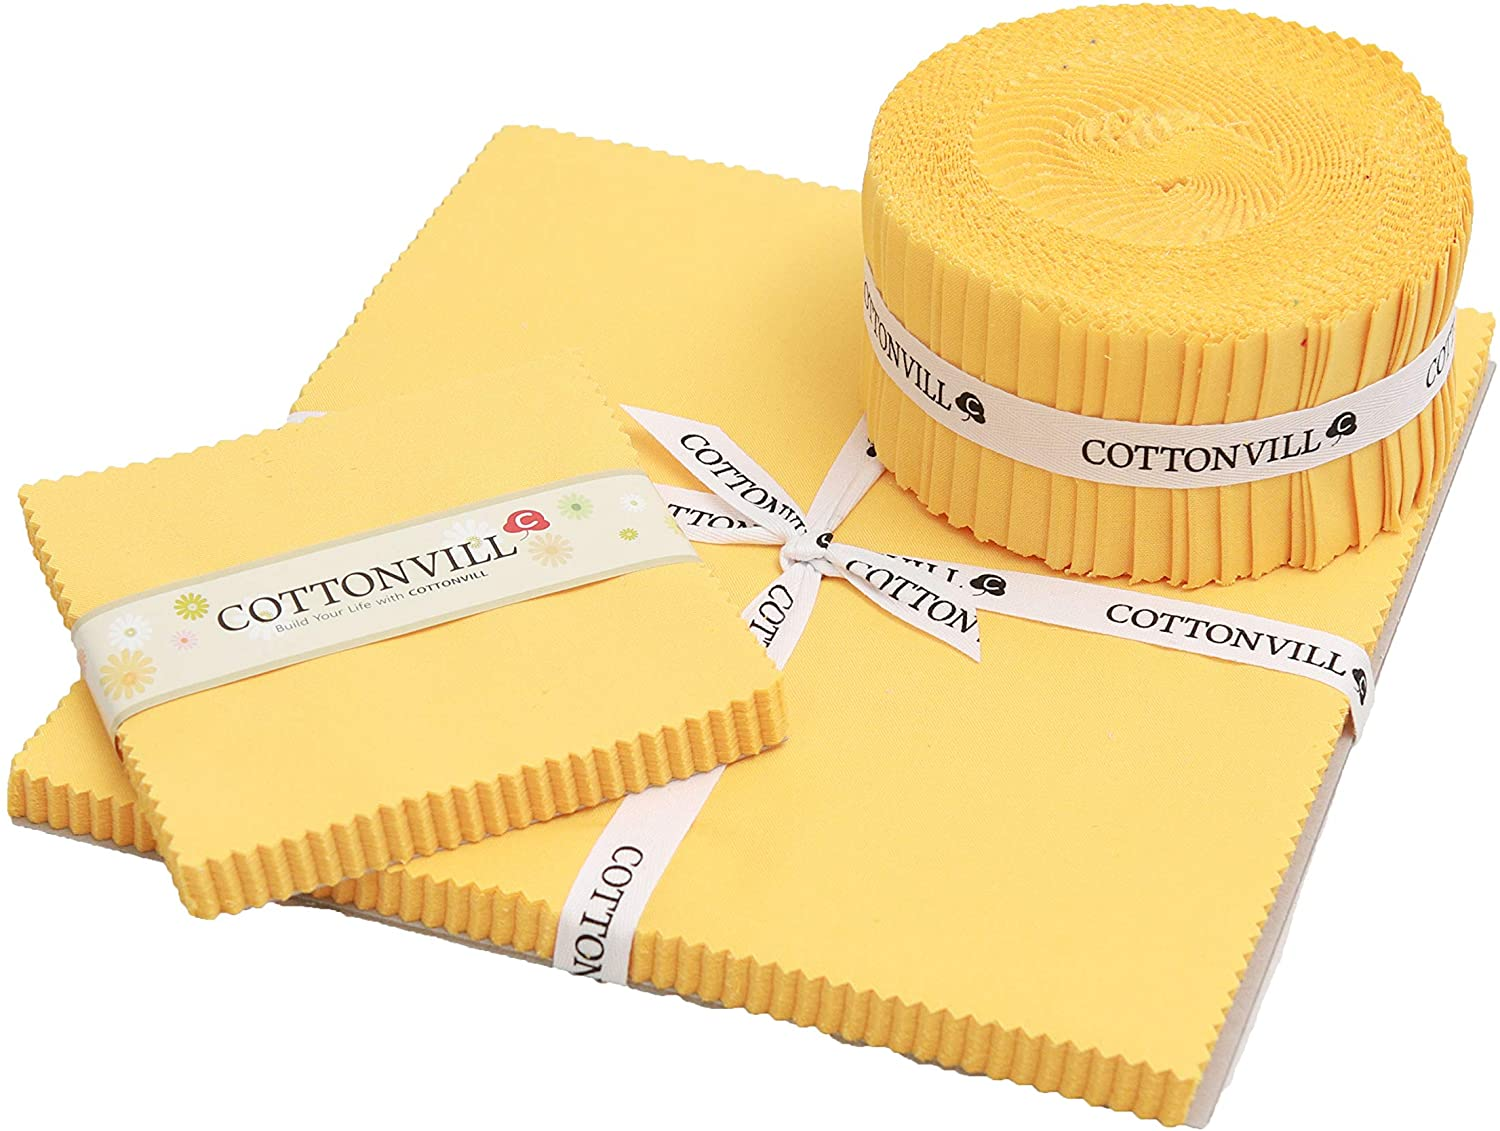 COTTONVILL 20COUNT Cotton Solid Quilting Fabric (2.5inch Strip, 14-Banana)